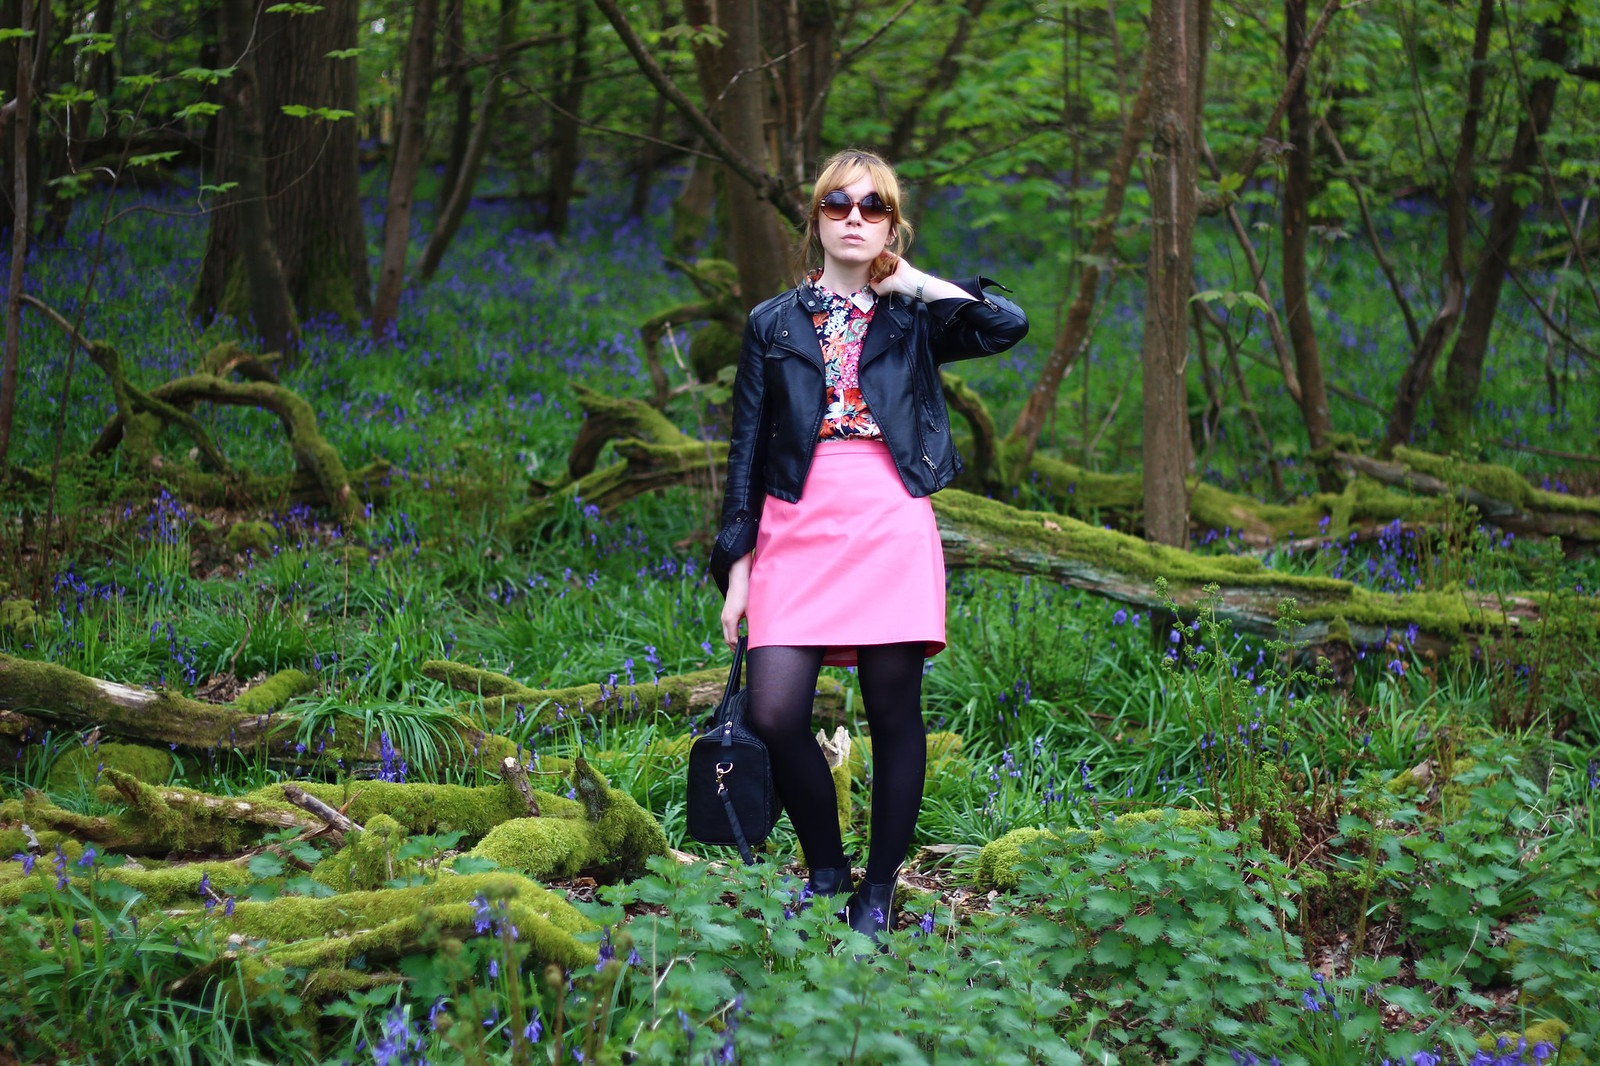 4bluebells, spring, fashion, florals, zara, high street, blog, personal style, river island, ebay, leather jacket, affordable, retro, 60's, sixties, topshop